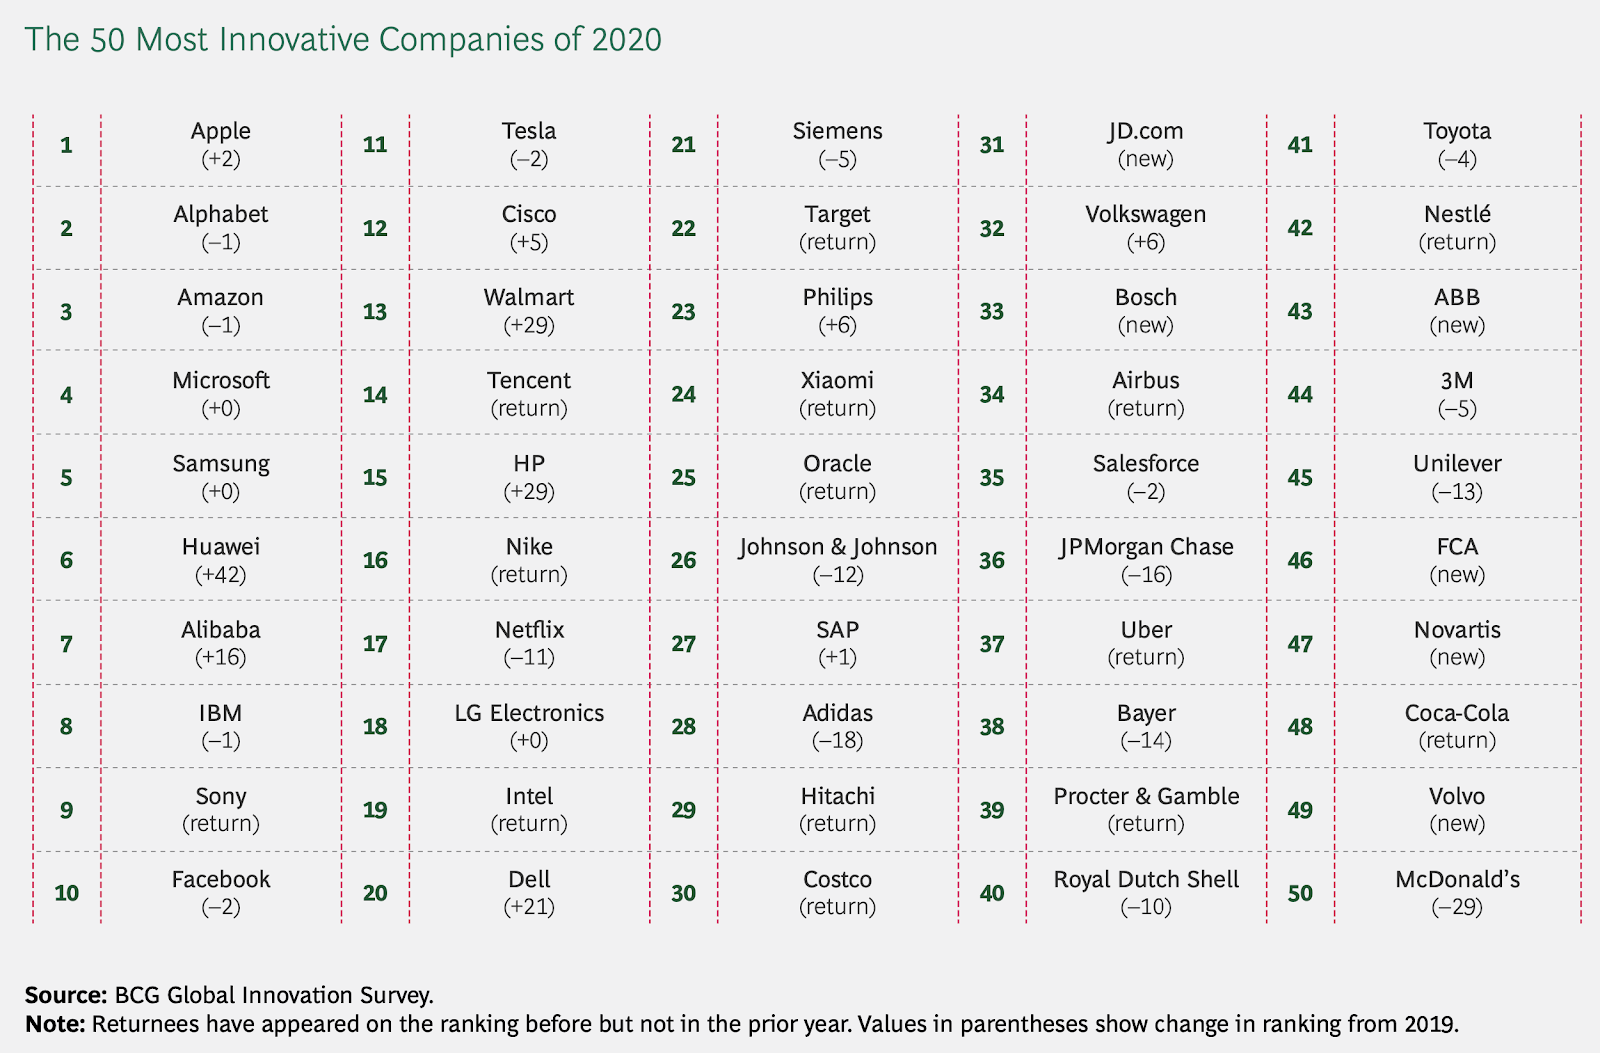 50 Most Innovative Companies list